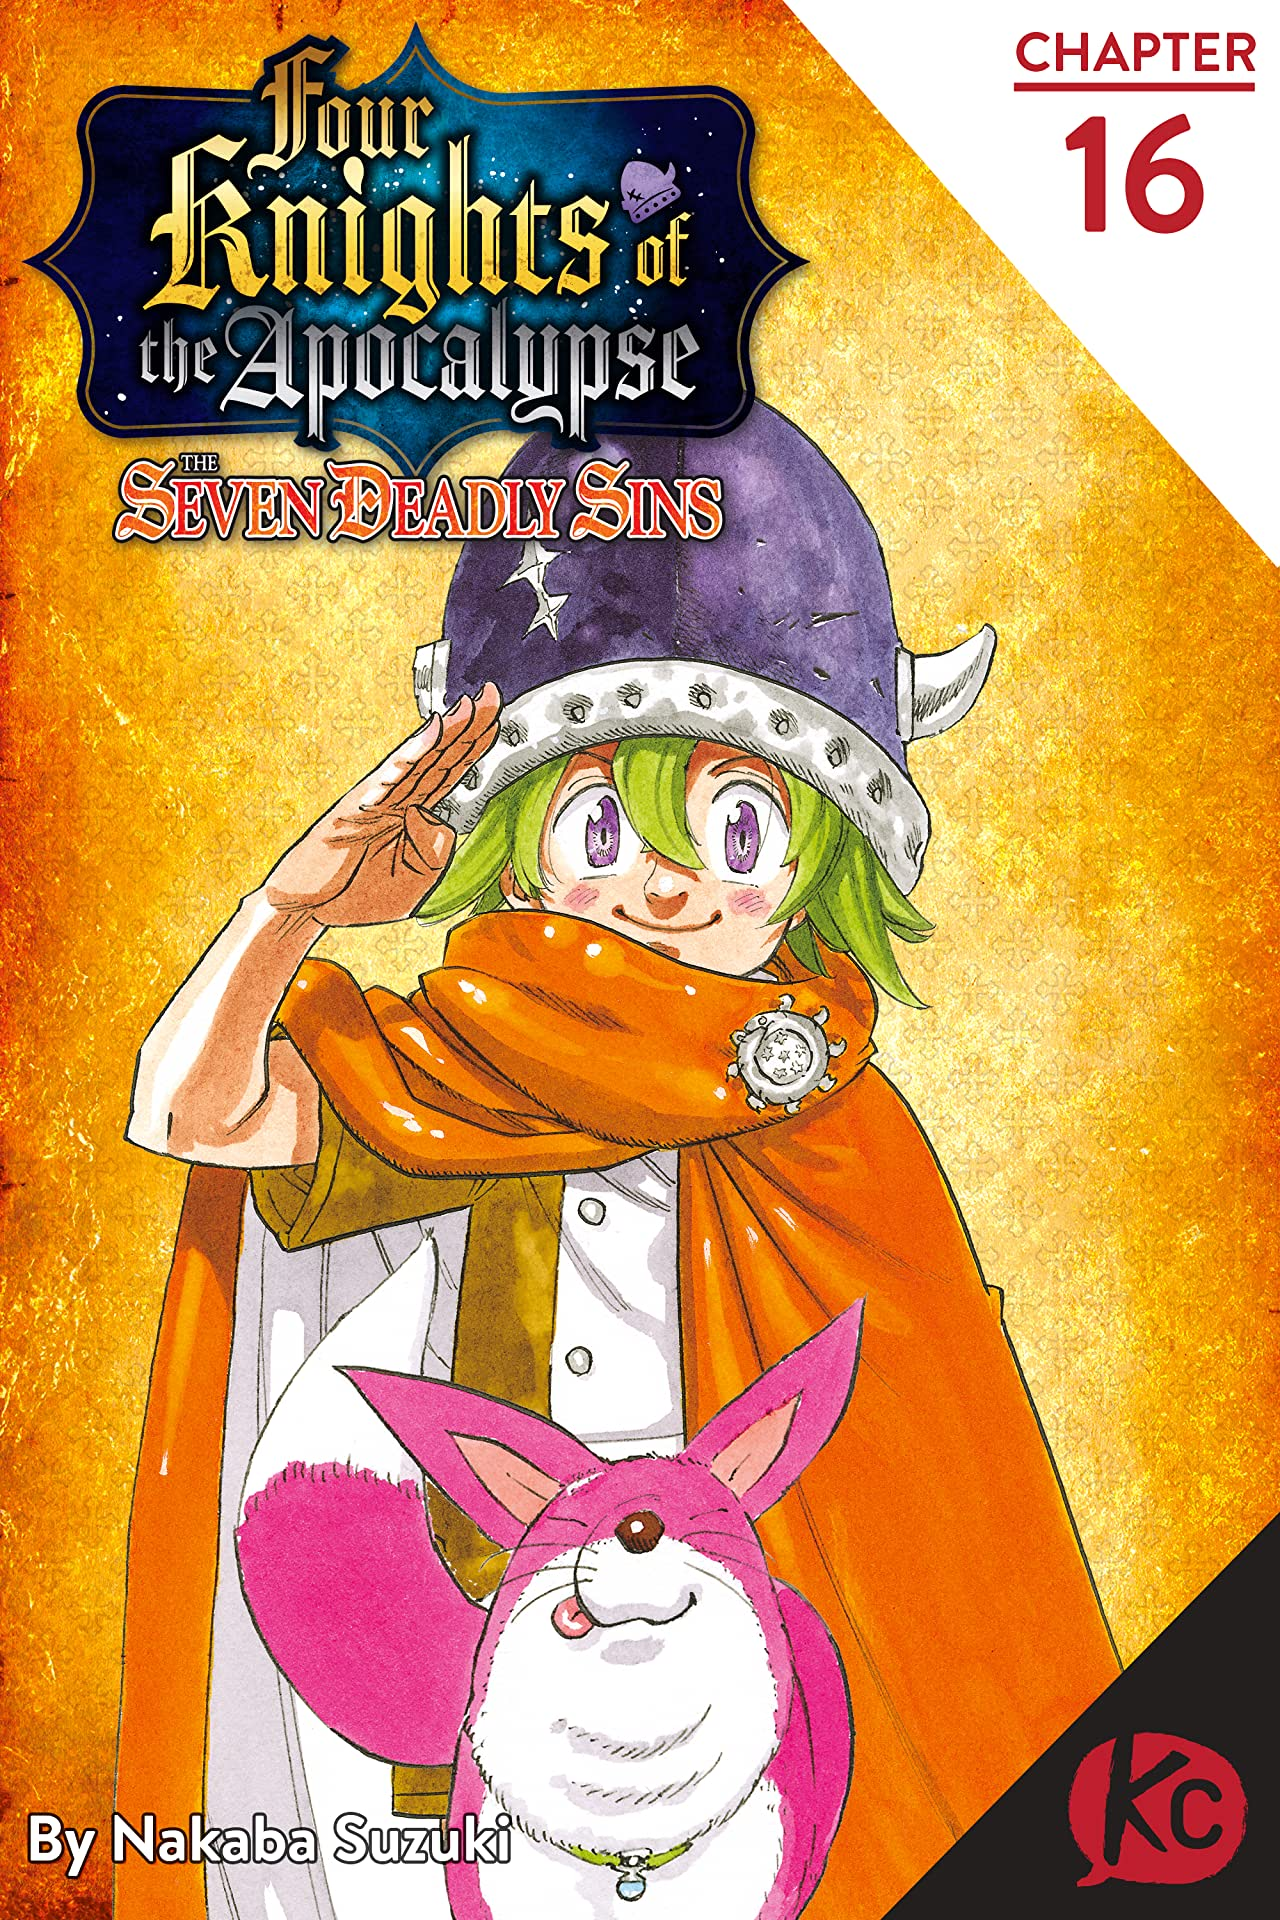 The Seven Deadly Sins: Four Knights of the Apocalypse #16